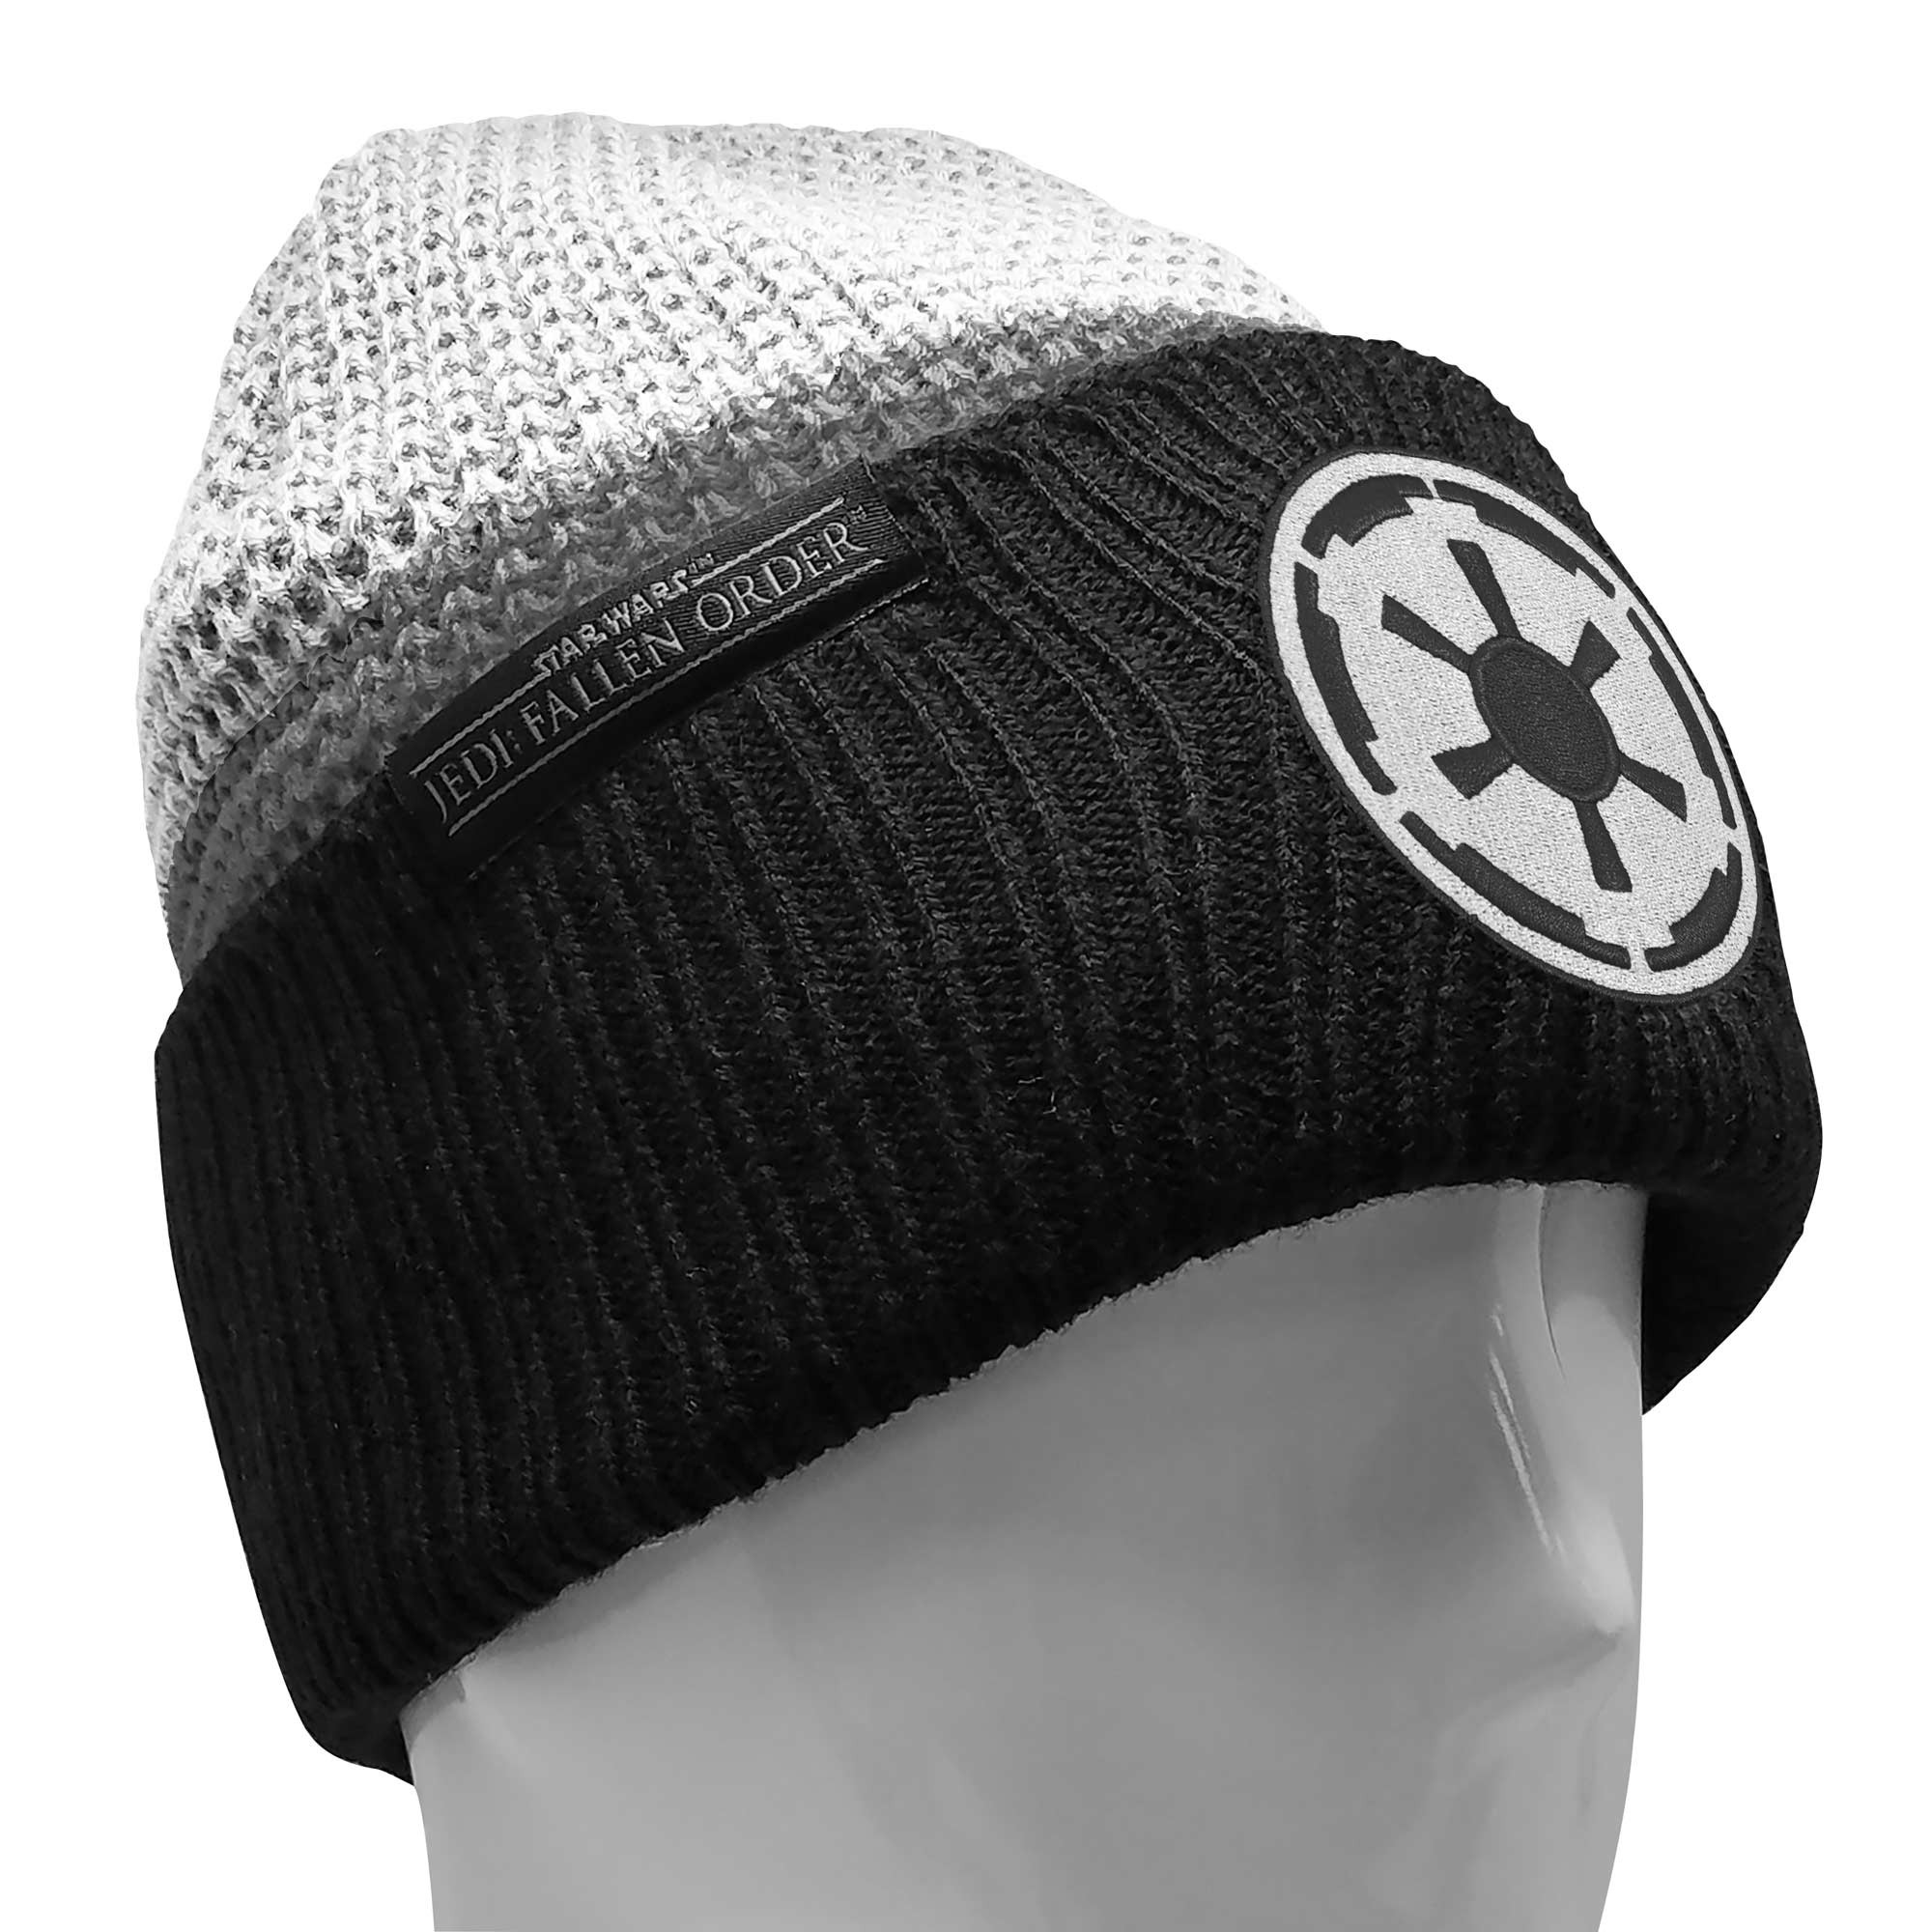 Star Wars Beanie with a Jedi Fallen Order Storm Trooper Patch, Image 1